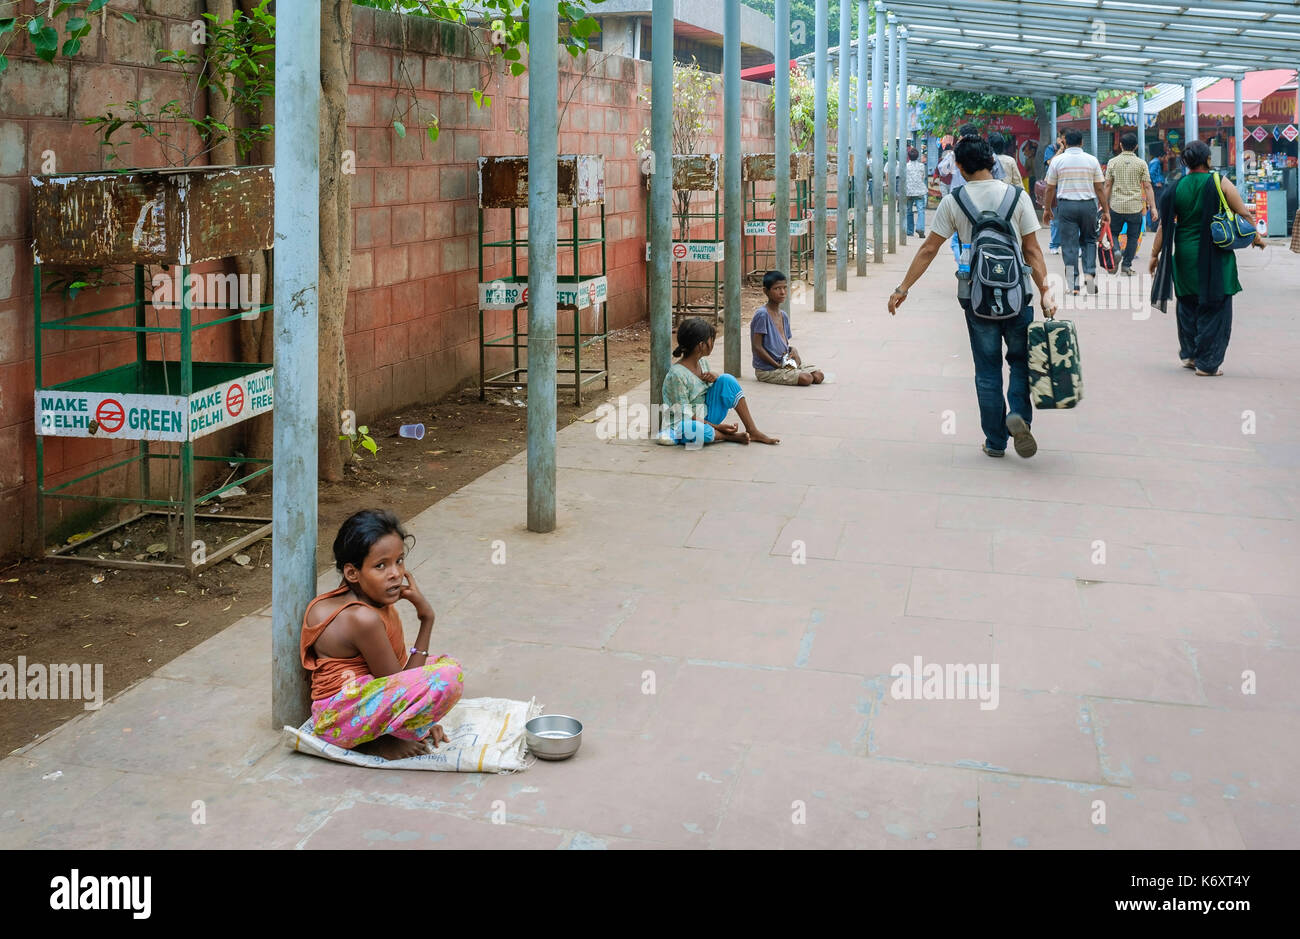 Disabled and disfigured children seeking alms outside a metro station as disembarked passengers walk past in Delhi, India. - Stock Image